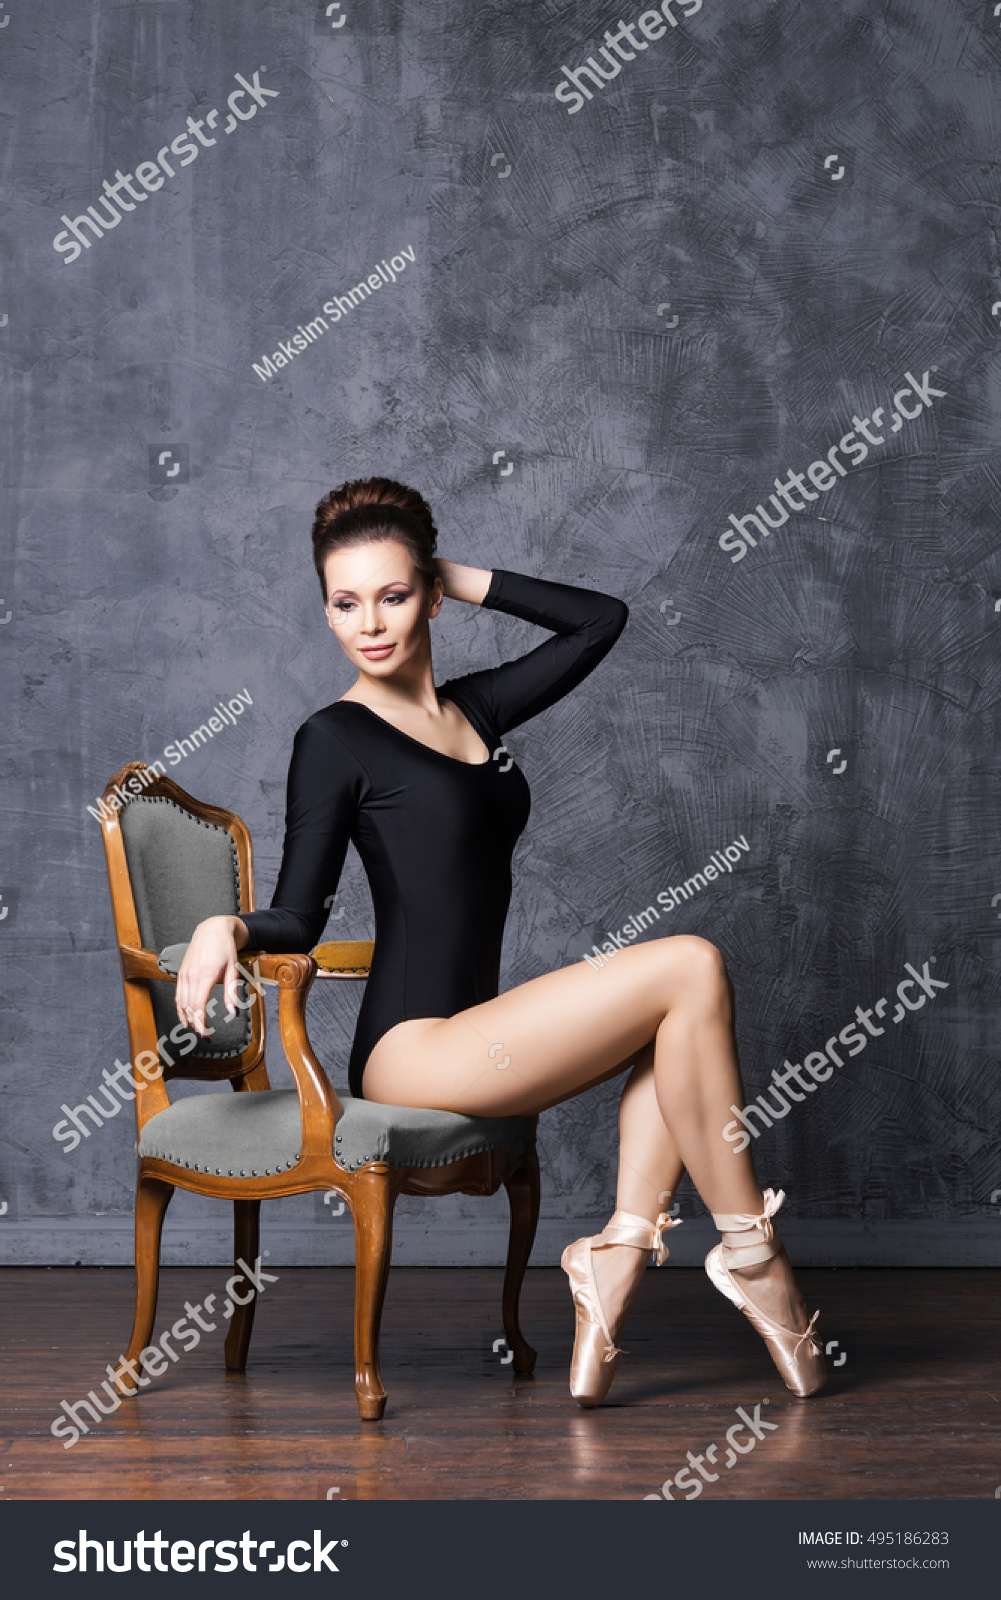 ea72fc61c739 Young and beautiful ballerina with a perfect body sitting on a retro  armchair.